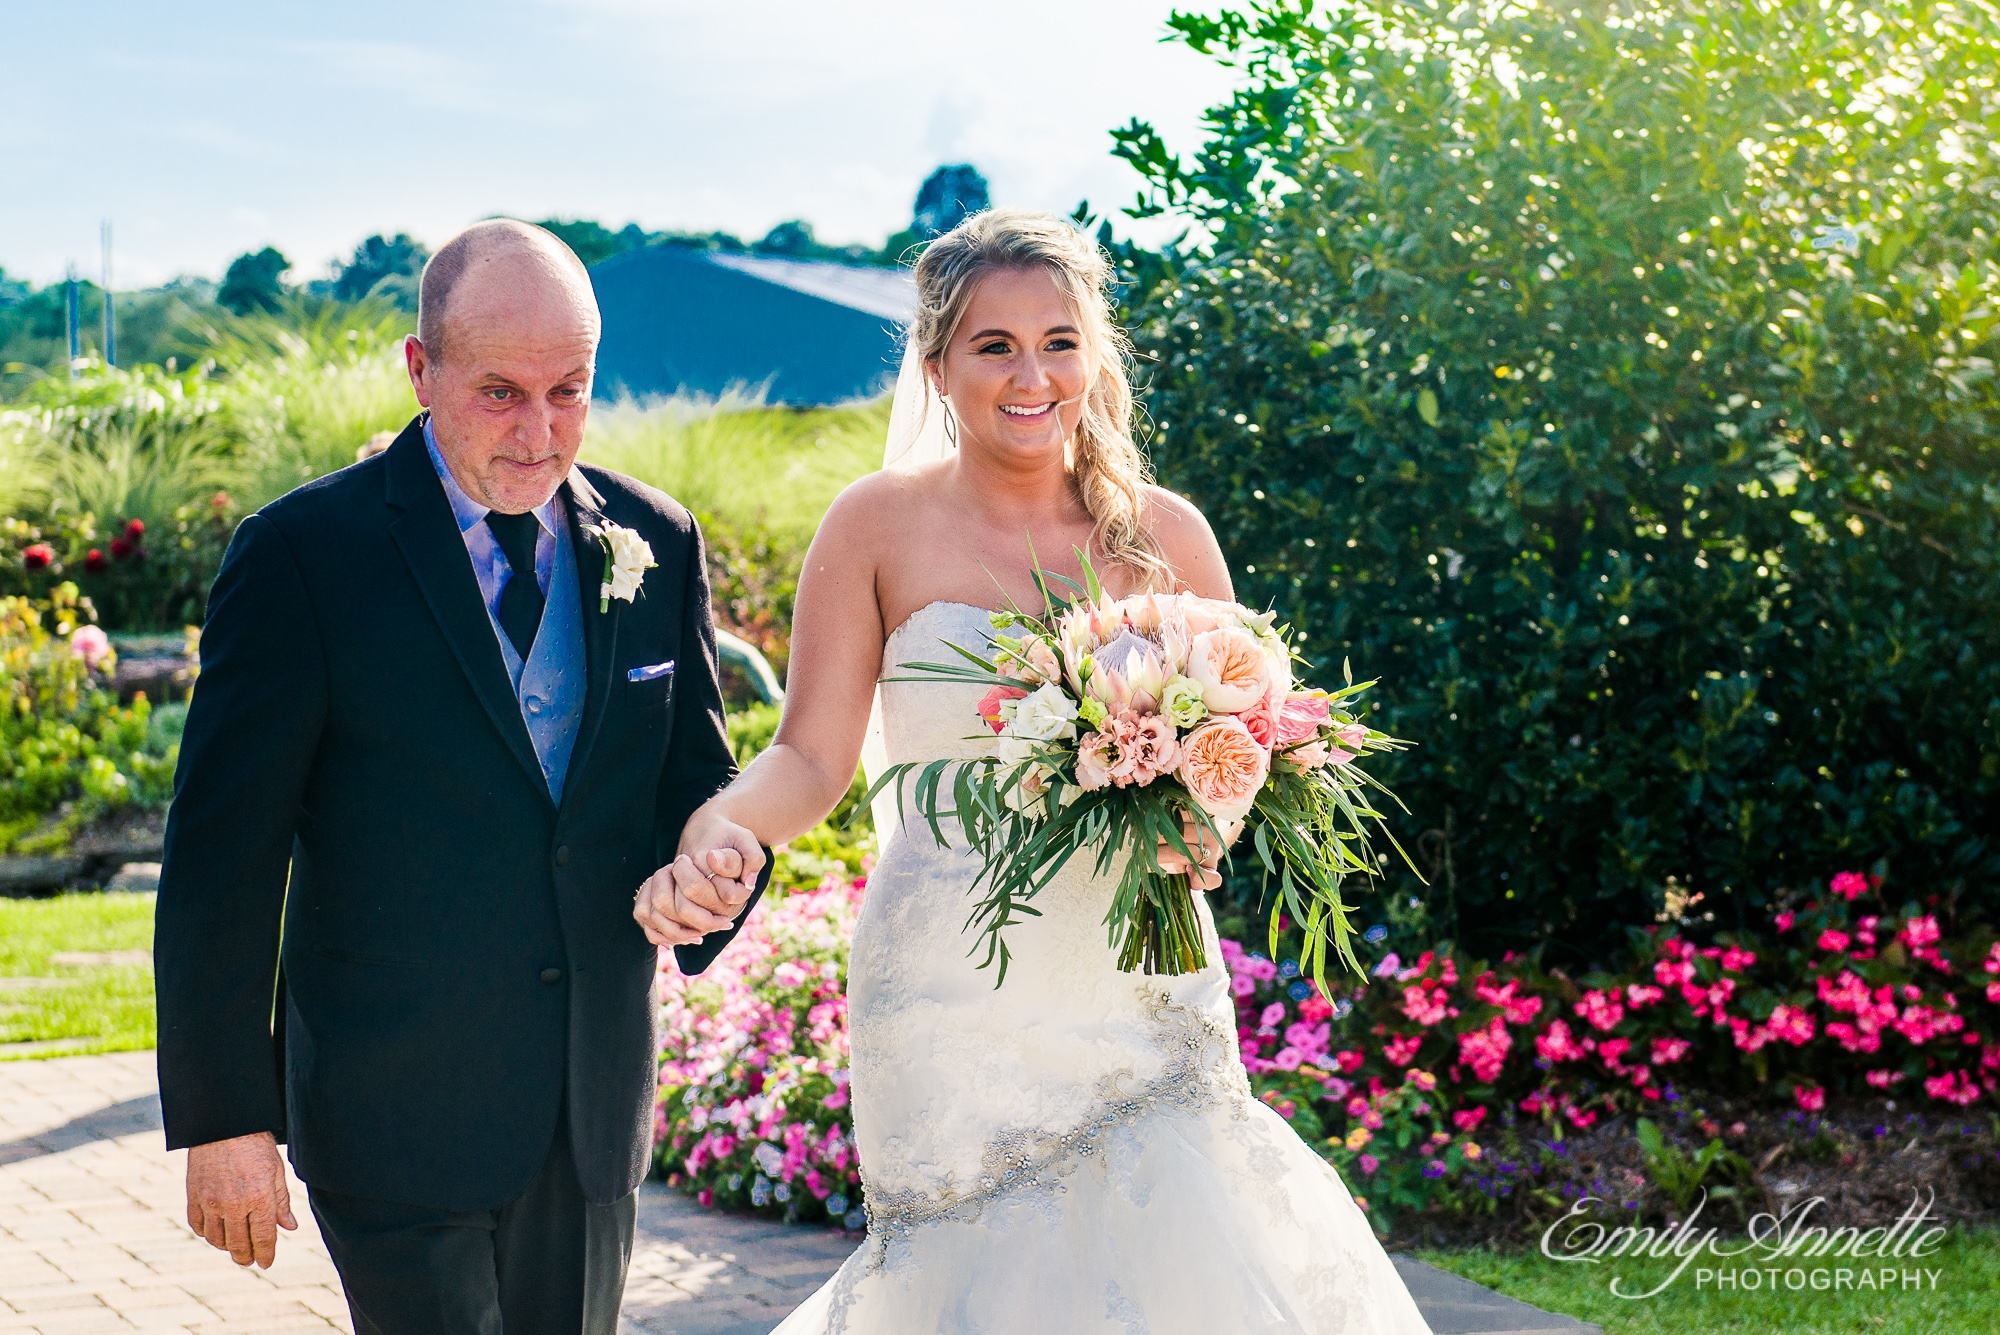 A bride walks down the aisle with her father while she holds a big tropical flower bouquet during a wedding at Herrington on the Bay in North Beach, Maryland